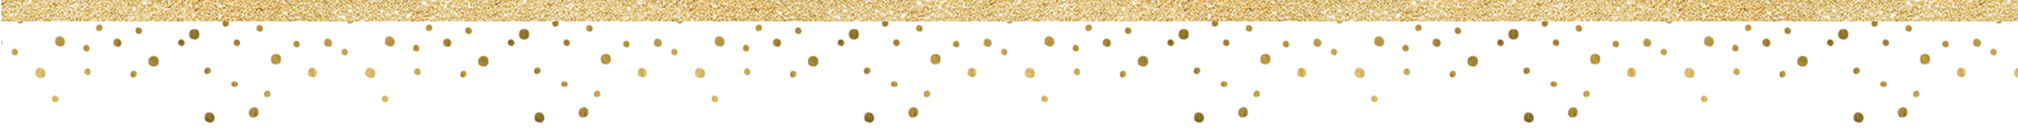 element-gold banner and gold dots divider